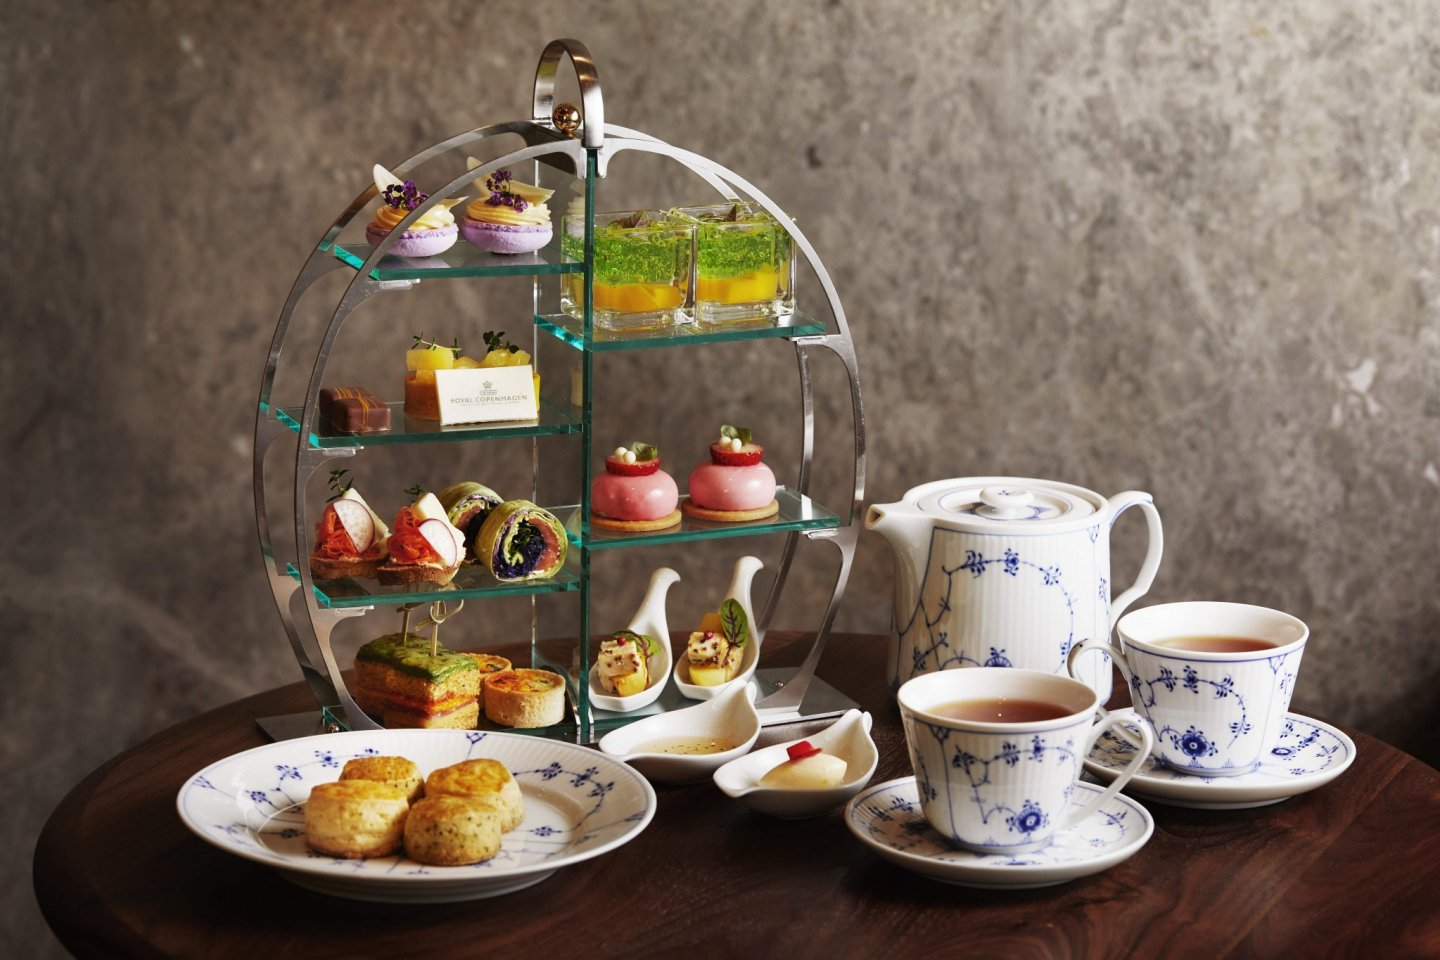 The afternoon tea will be served on Royal Copenhagen ceramicware